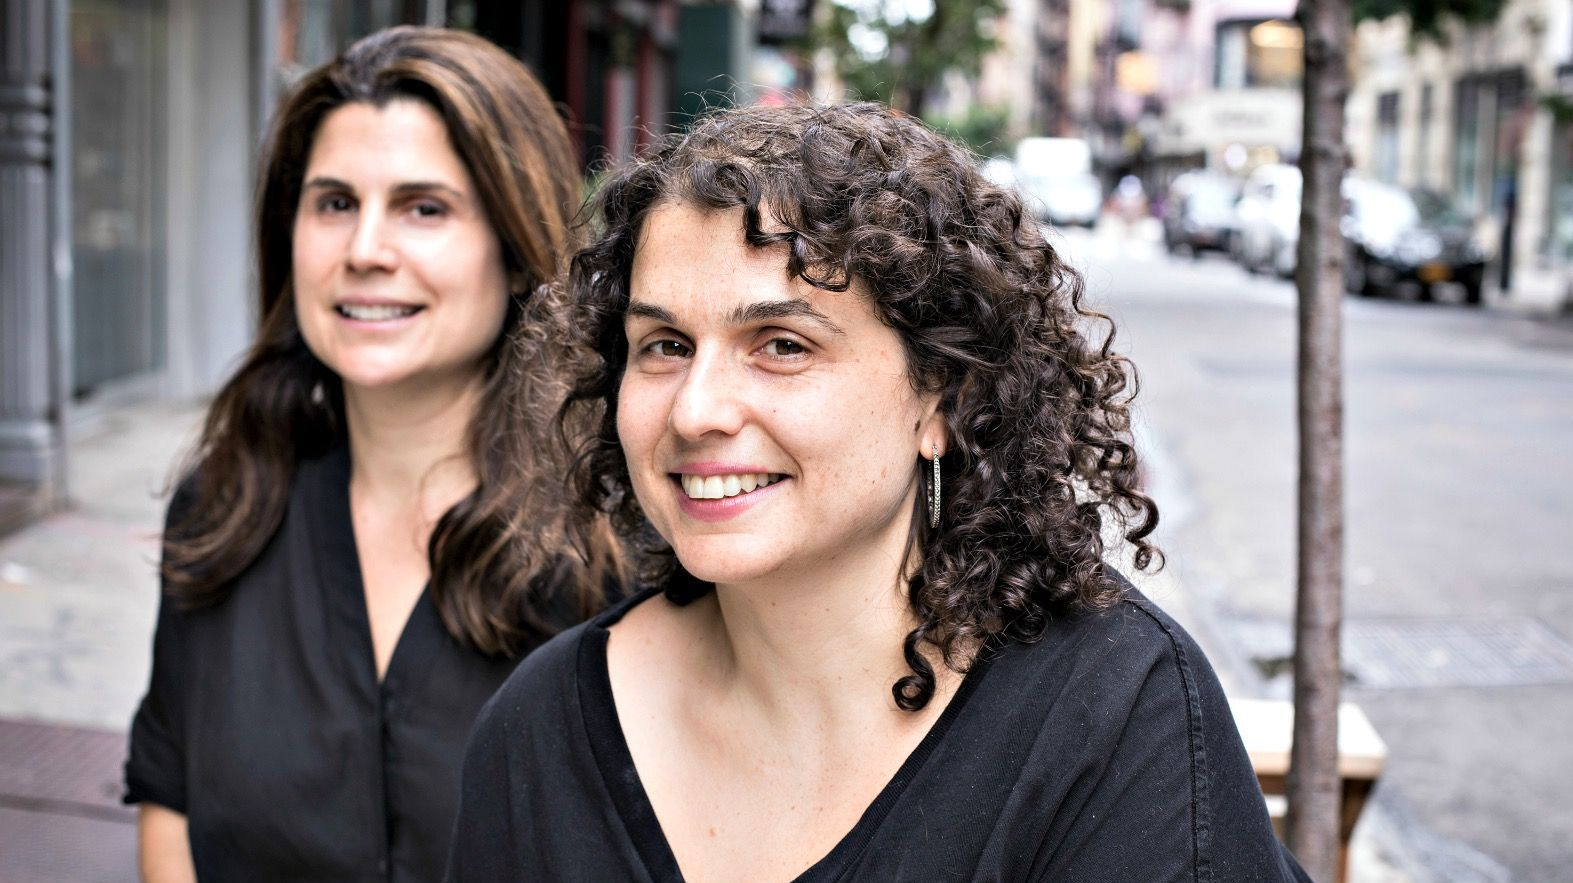 The Kubersky sisters, Sara (left) and Erica.